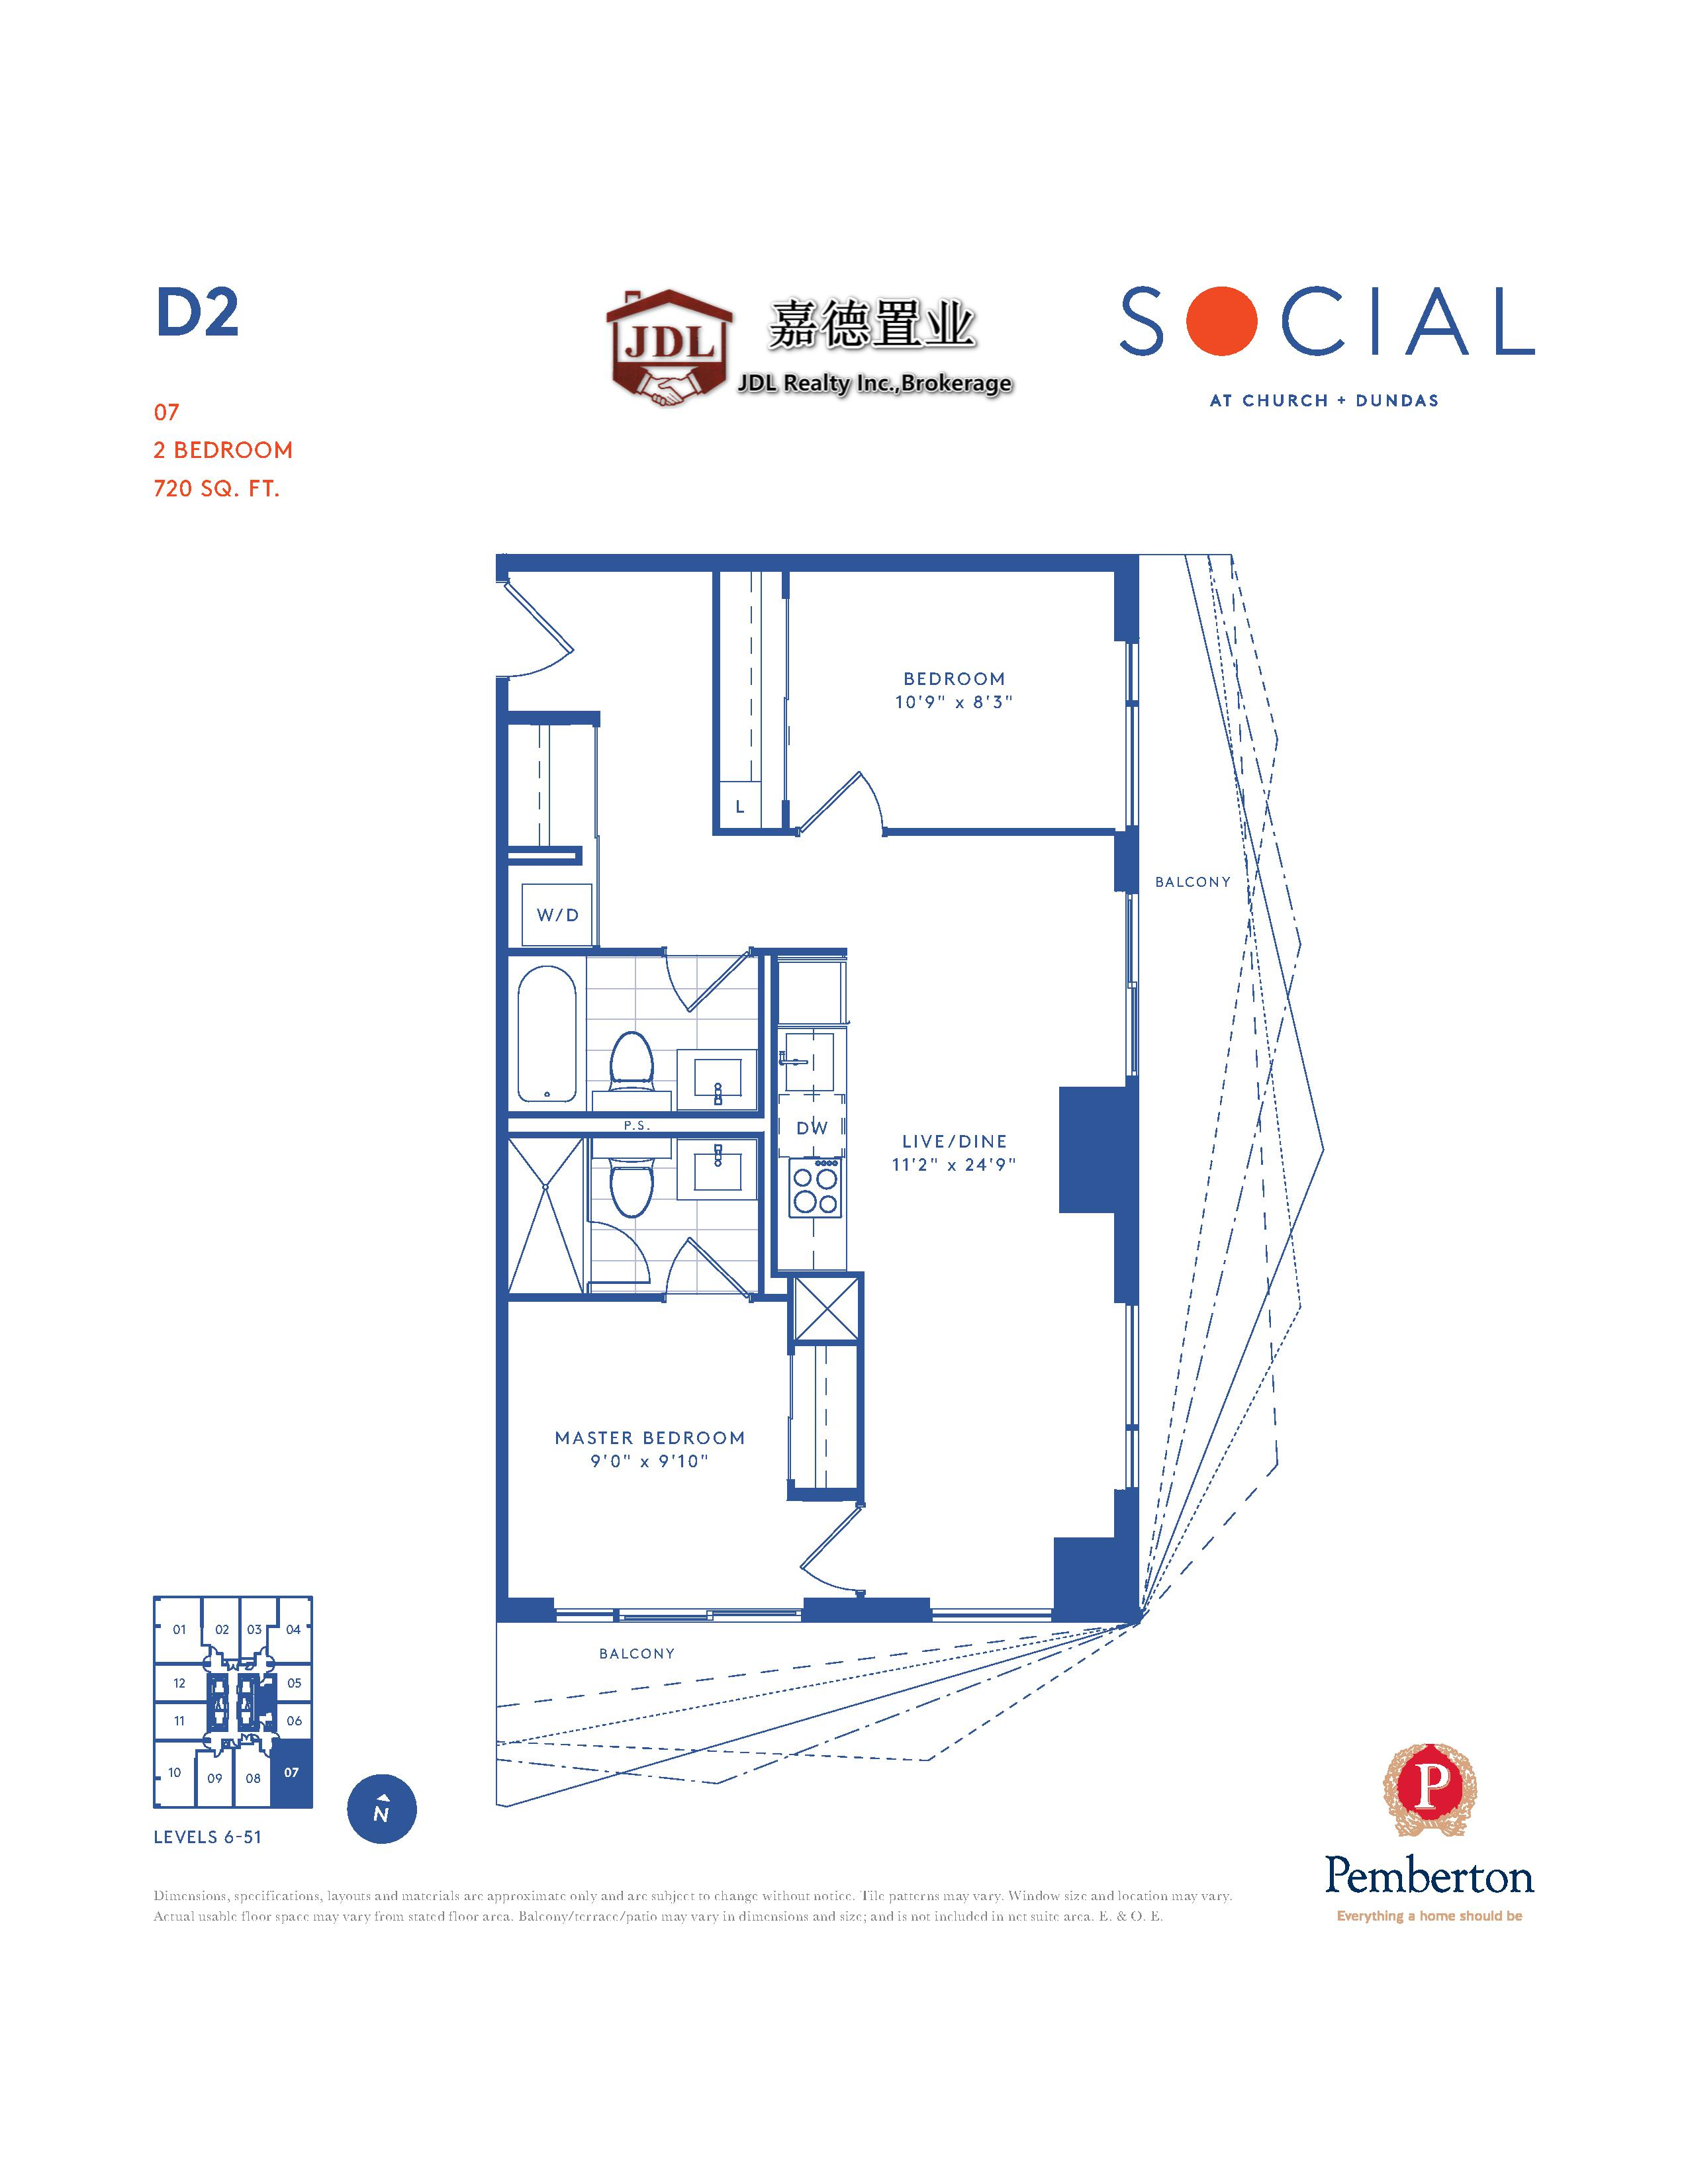 Social Tower floor plan 1 9